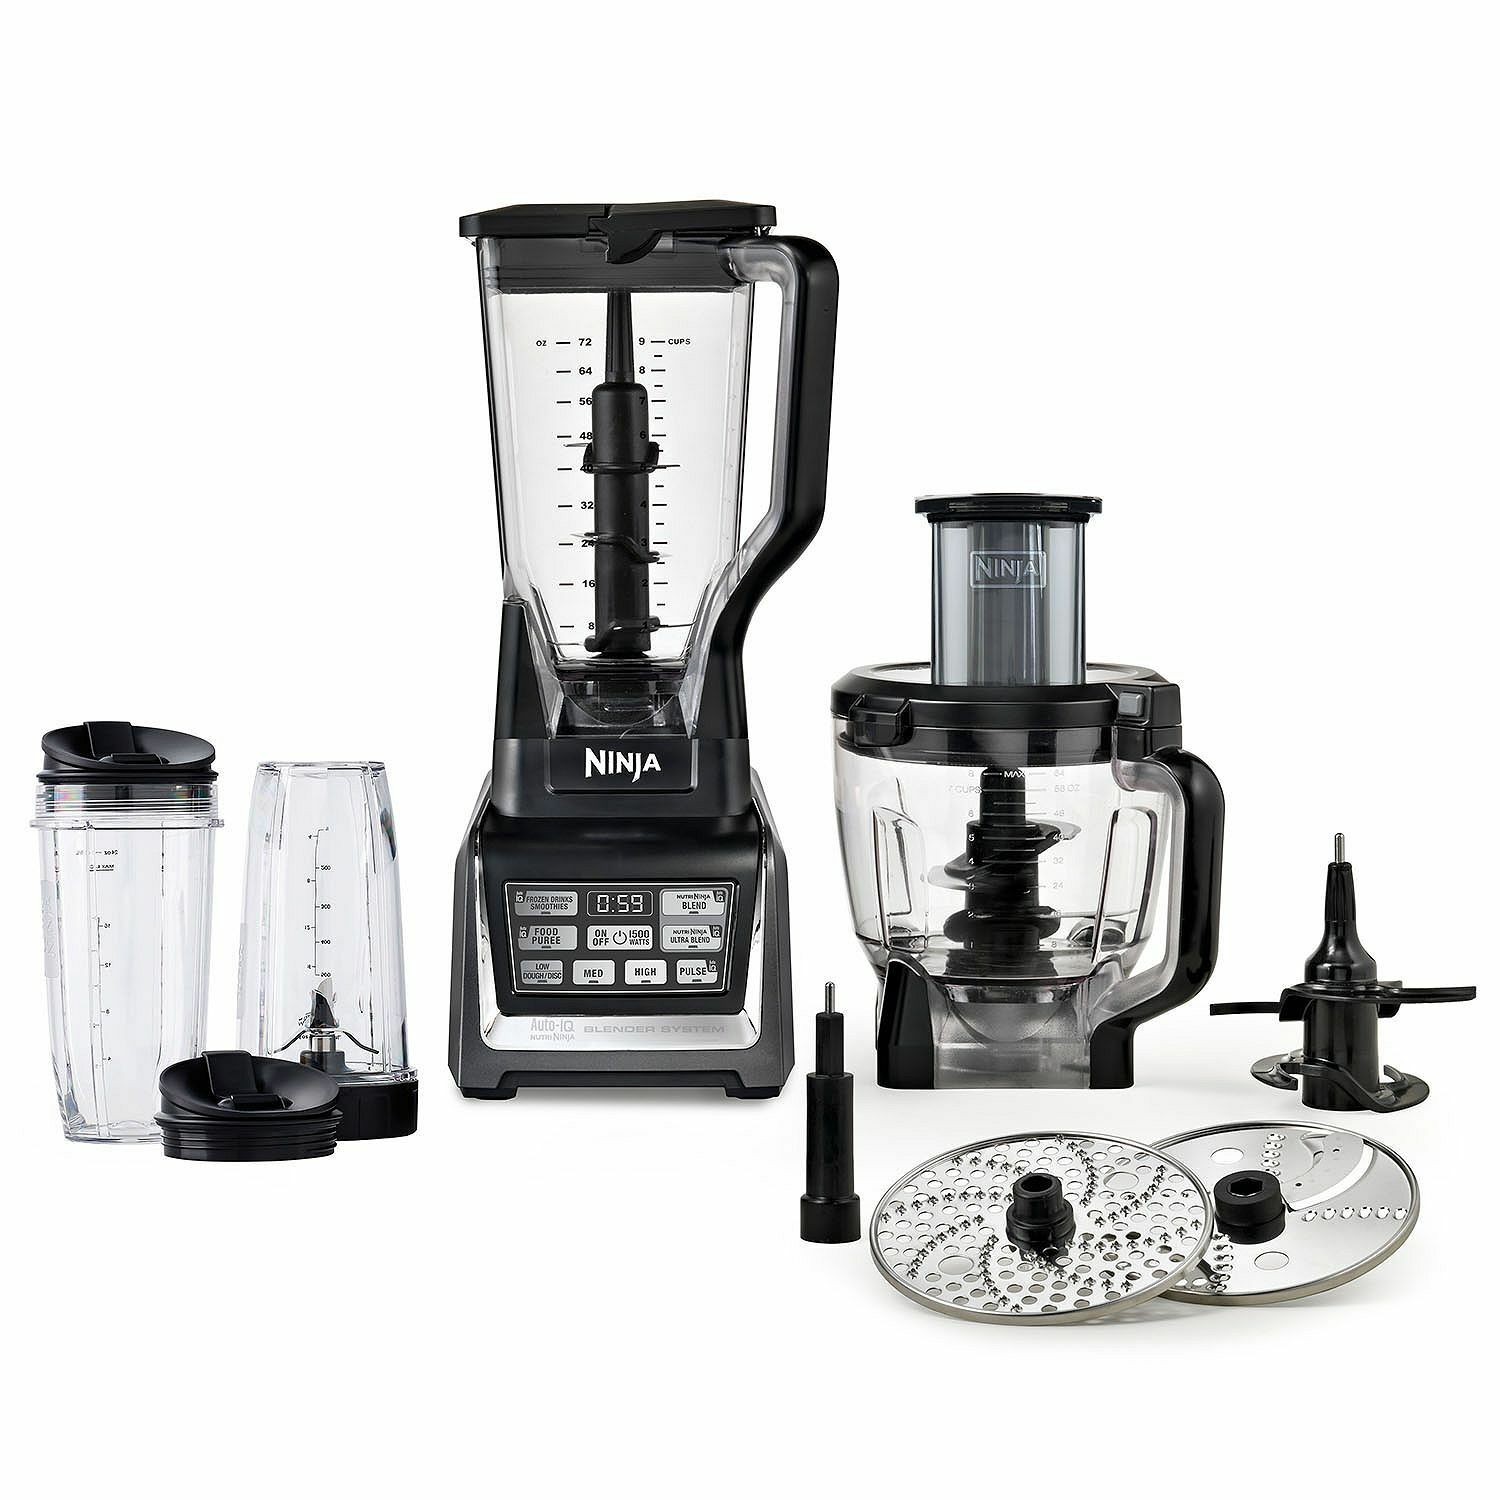 nutri ninja 1500w auto iq bl681a blender food processor juicer 2 hp motor ebay. Black Bedroom Furniture Sets. Home Design Ideas